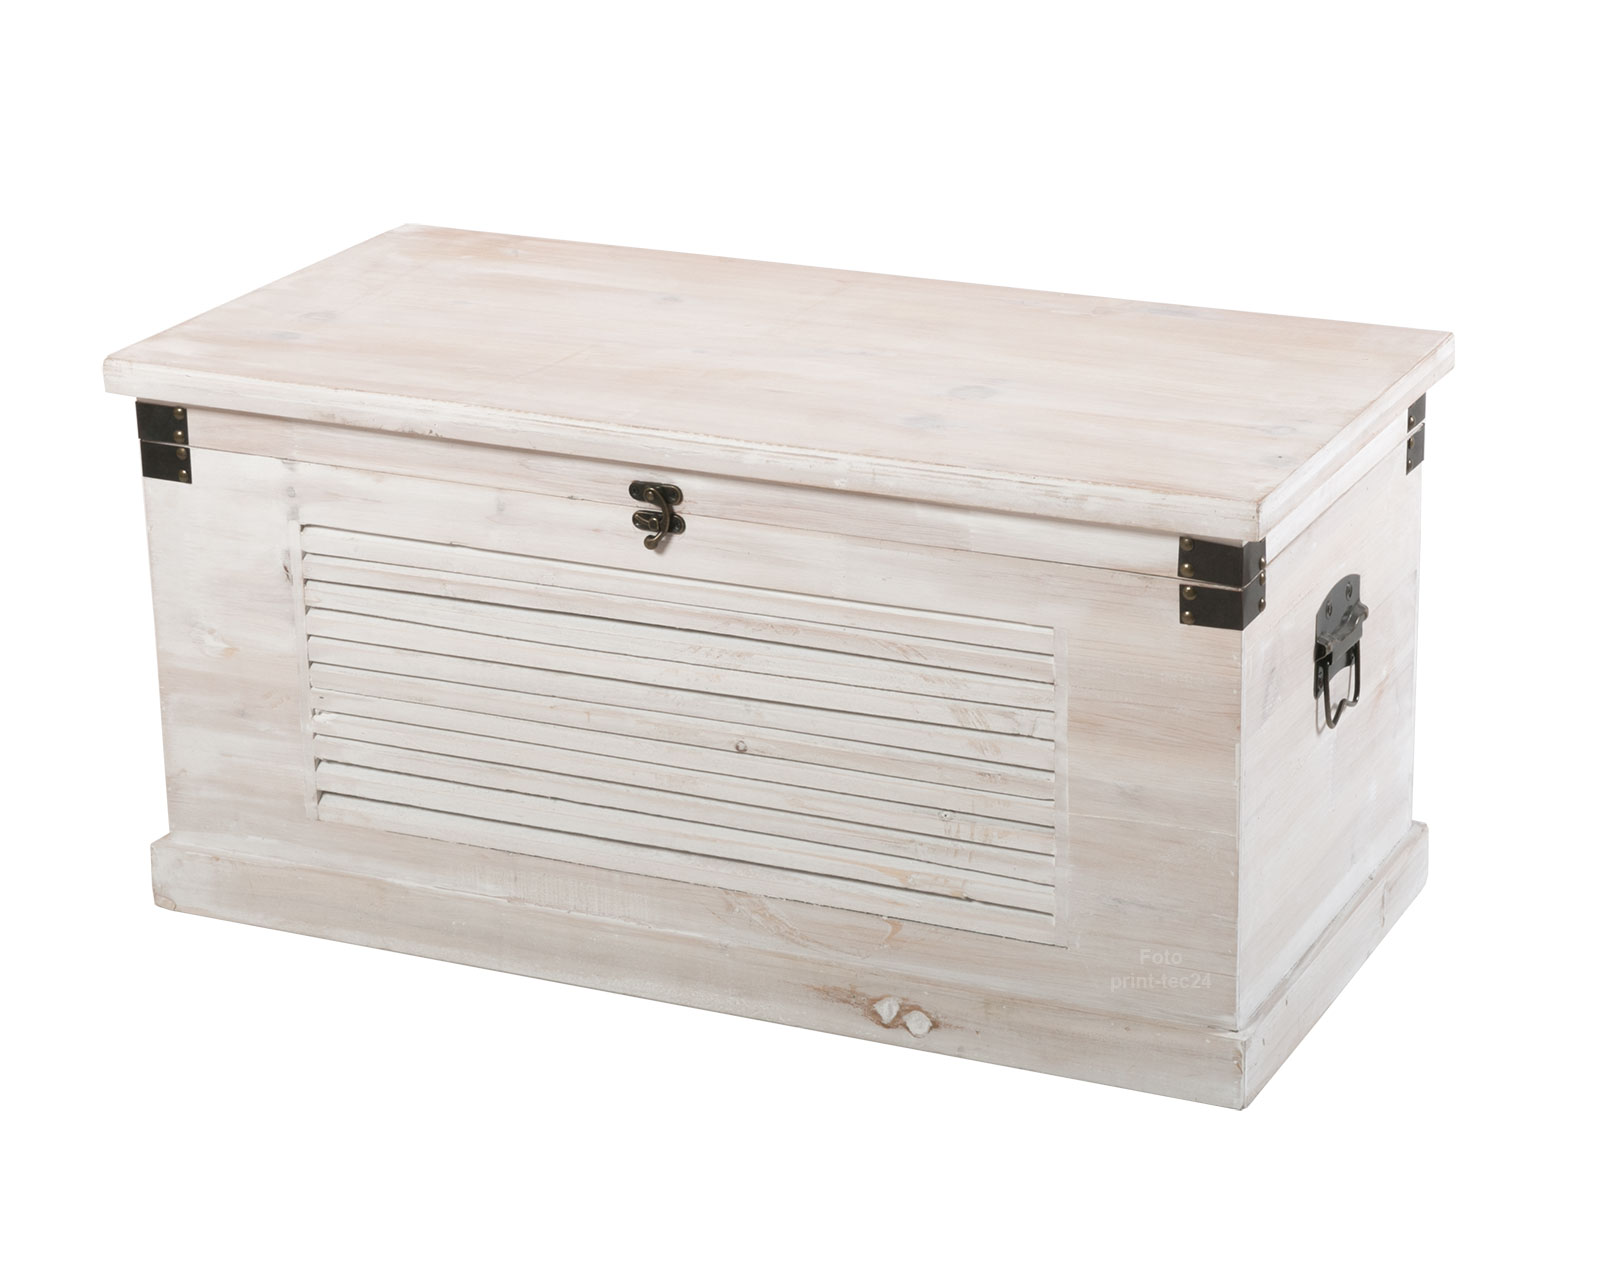 holztruhe w schetruhe truhe holz gartentruhe gartenbox holzbox antik wei ebay. Black Bedroom Furniture Sets. Home Design Ideas